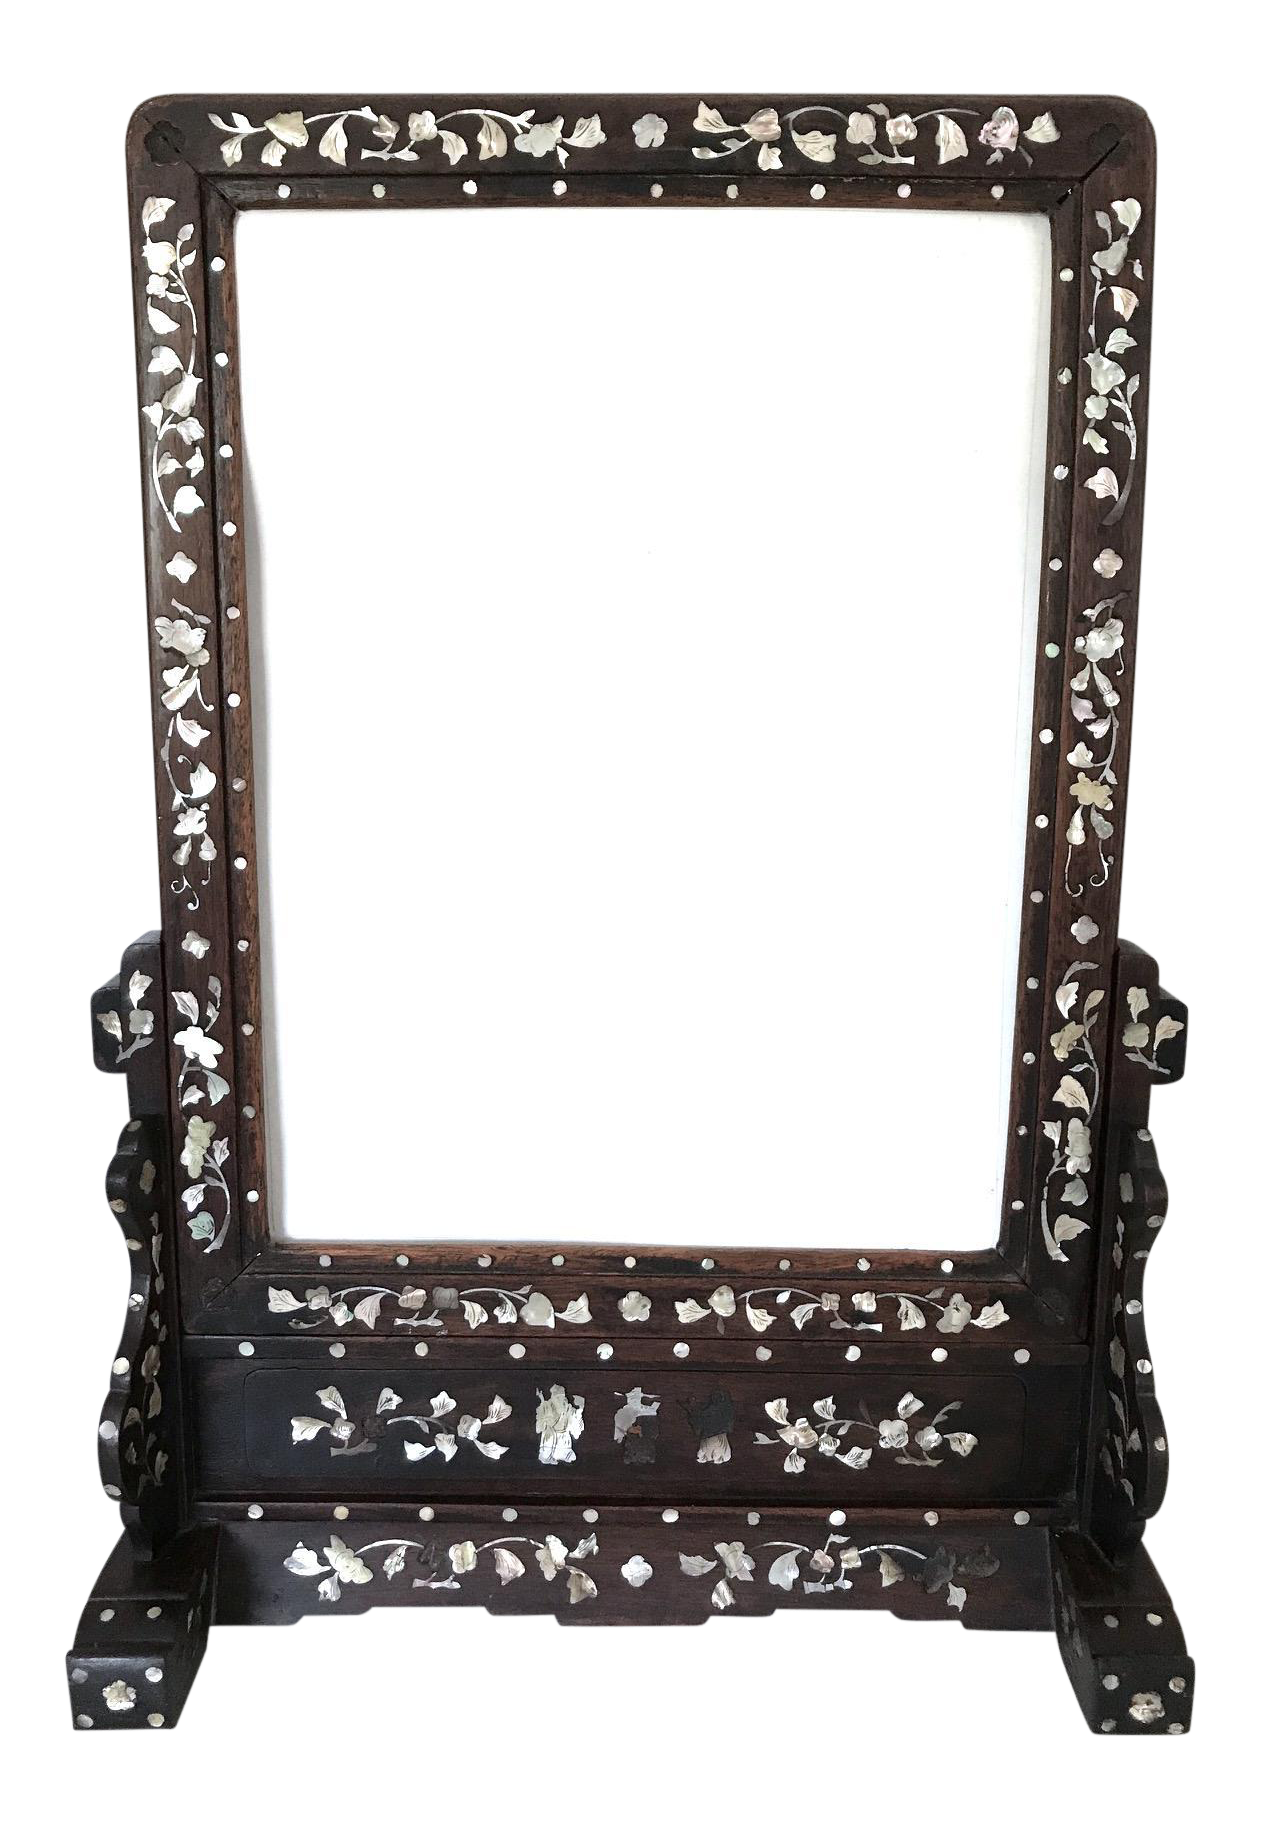 Vanity drawing makeup table. Antique inlaid chinese rosewood